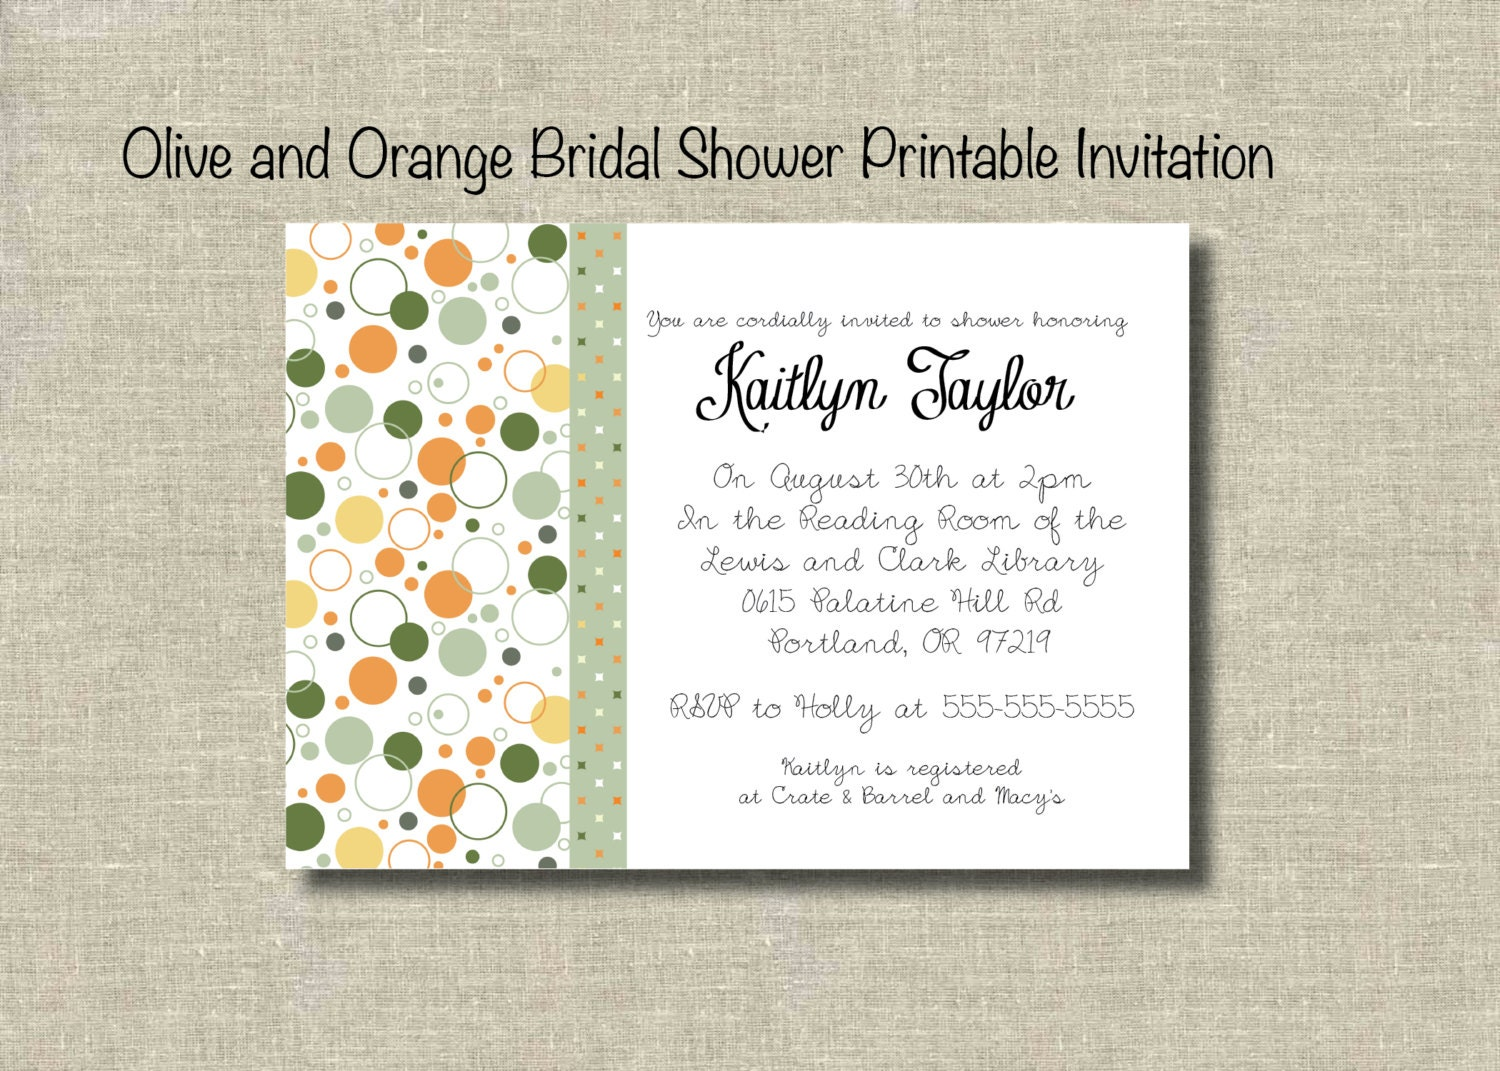 Orange and Olive Printable Bridal Shower Invitation